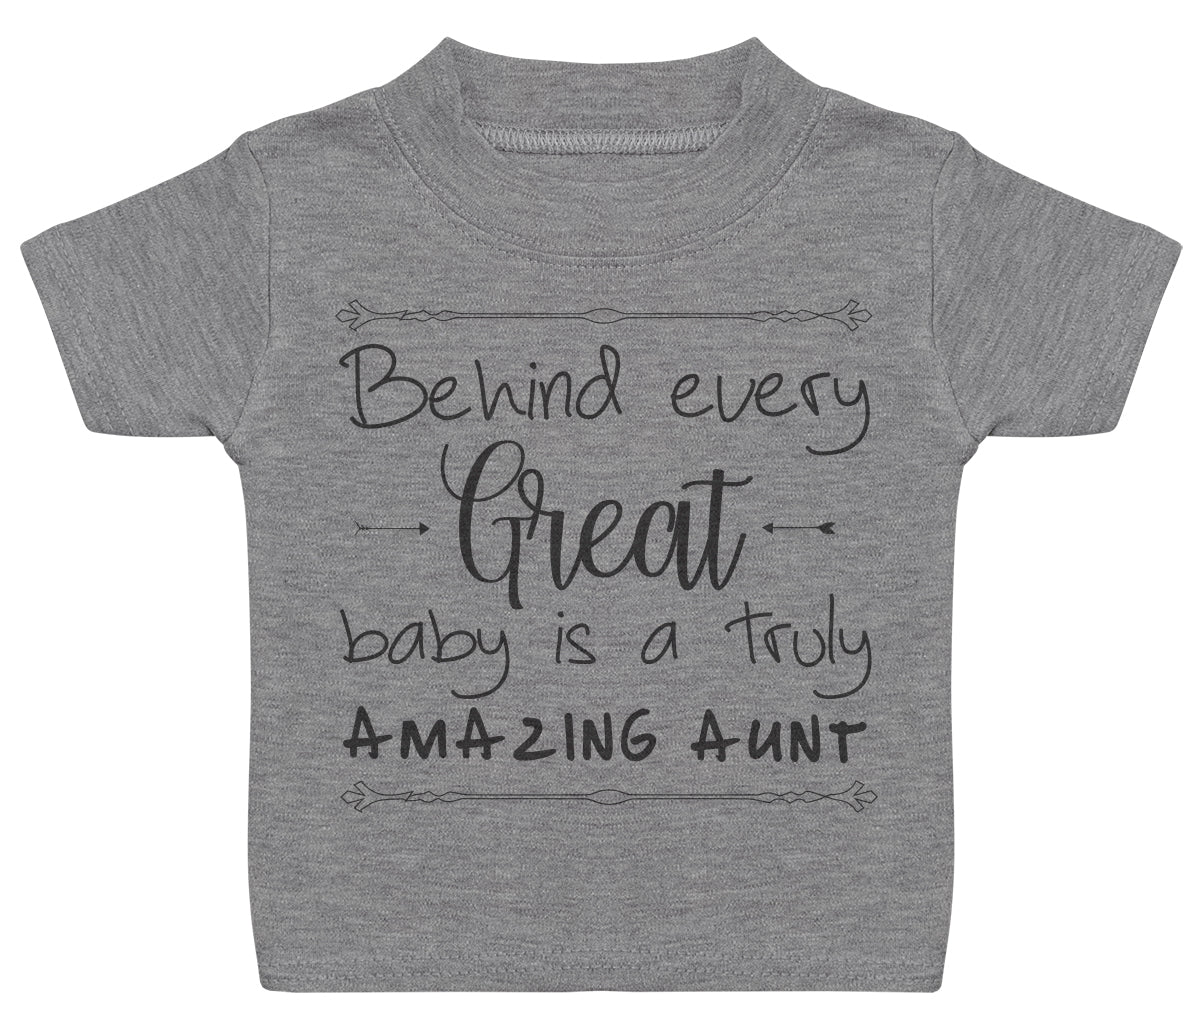 Behind Every Great Baby Is A Truly Amazing Aunt Baby T - Shirt